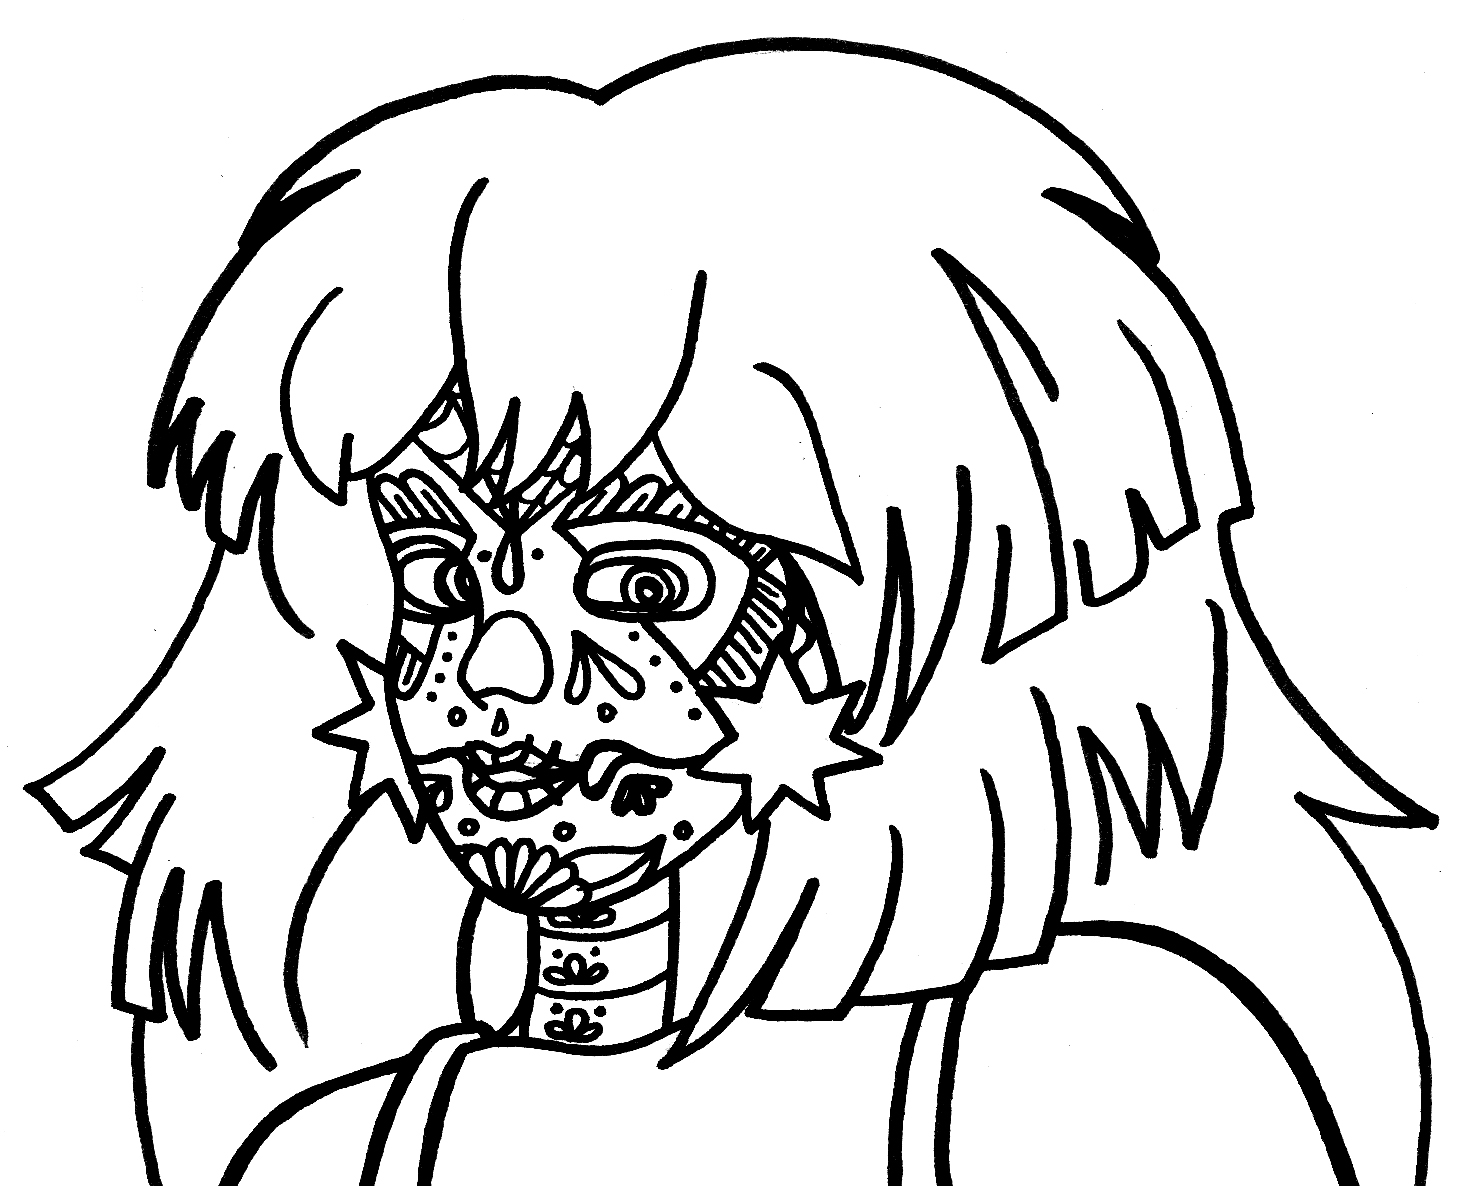 Free Coloring Pages Of And The Holograms Jem Coloring Pages